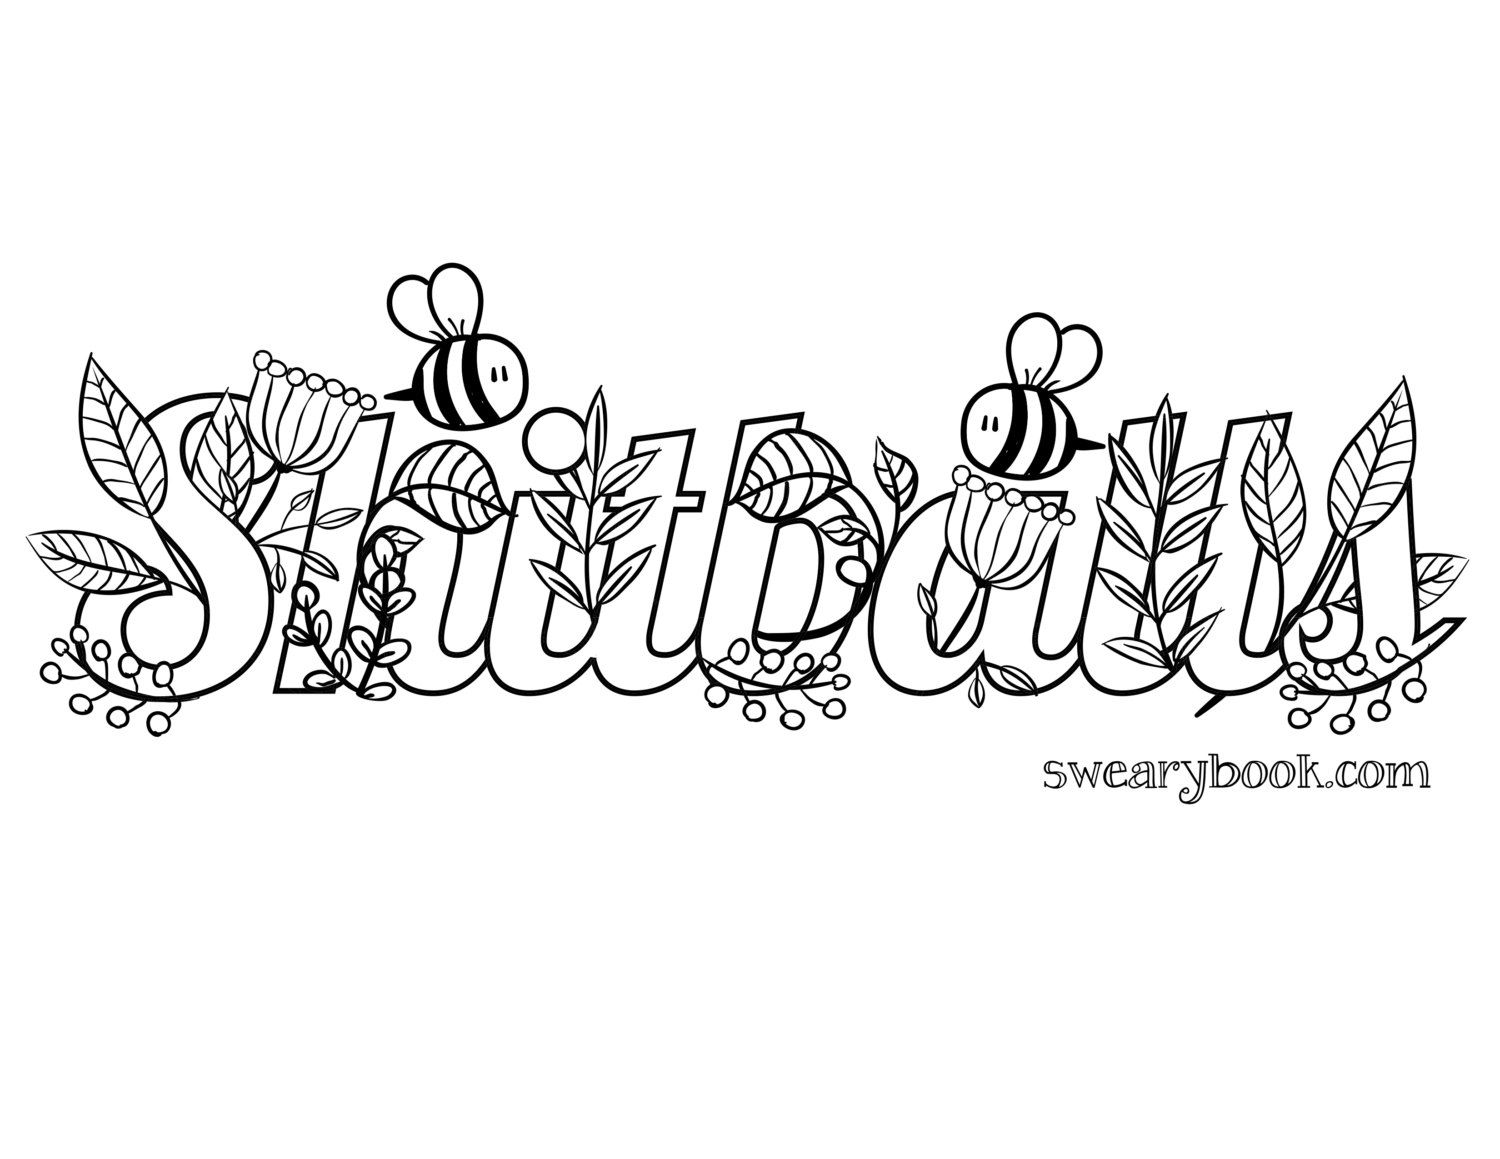 Shitballs Swear Words Coloring Page from the Sweary Coloring Book